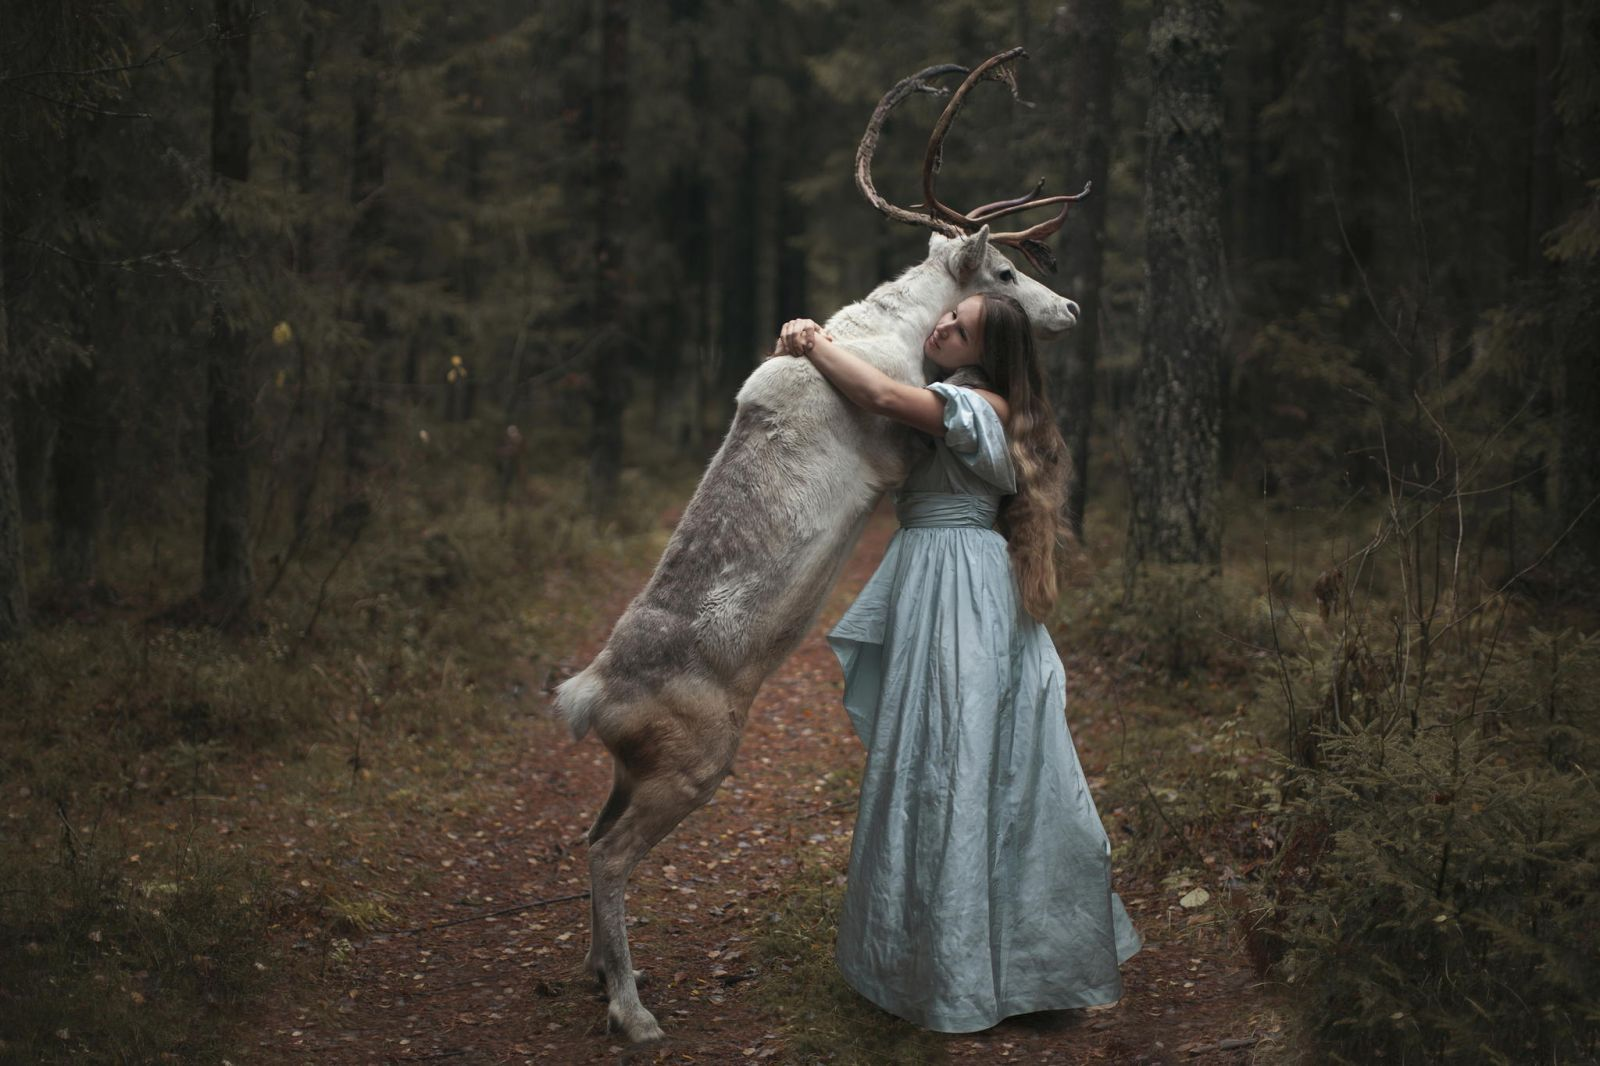 KATERINA PLOTNIKOVAS FAIRY TALE PHOTOGRAPHY OF YOUNG WOMEN - Russian photographer takes enchanting fairytale photos featuring wild animals